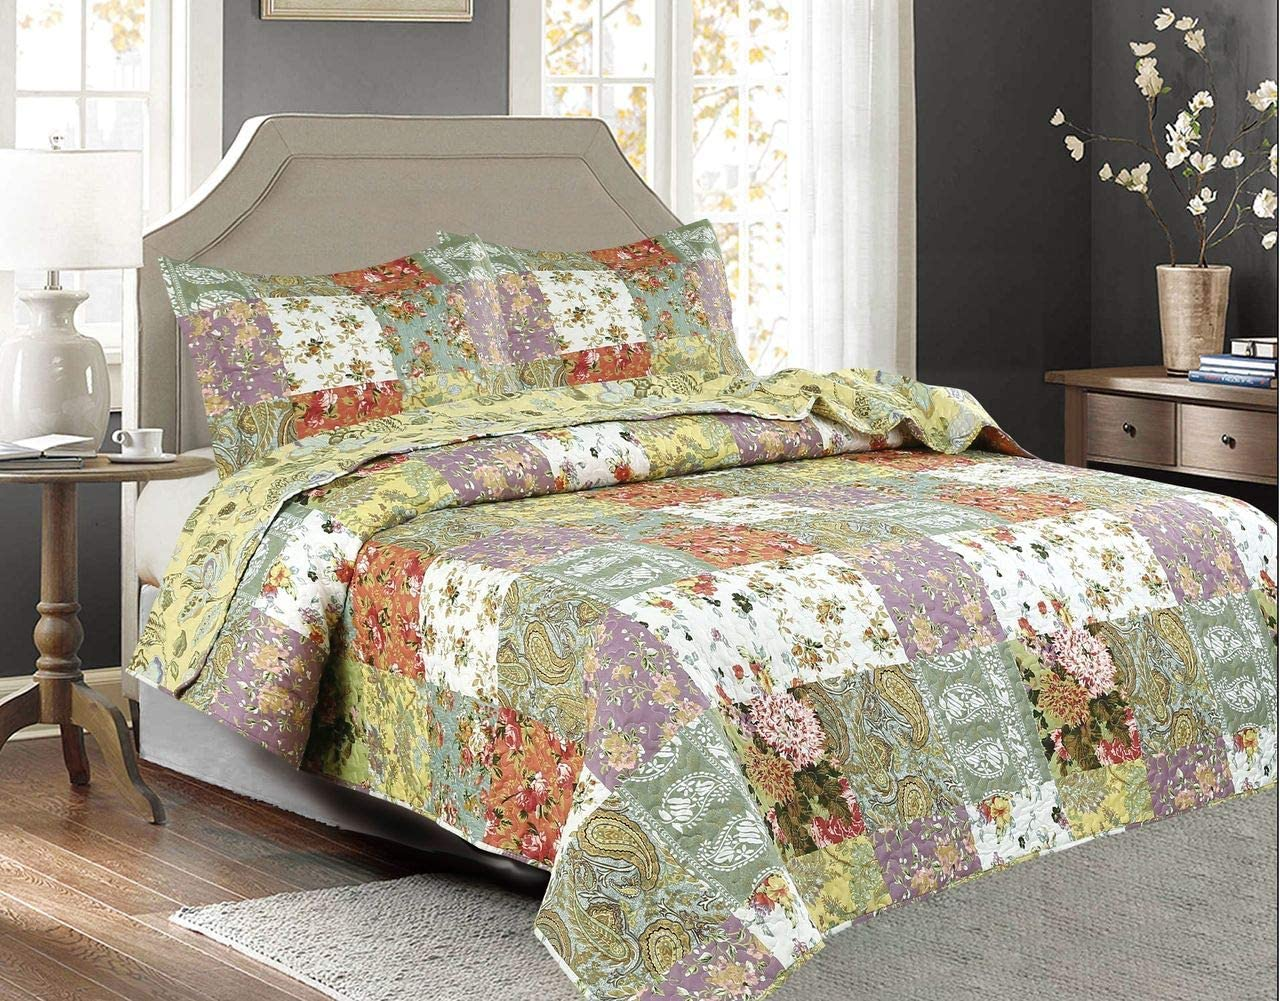 Legacy Decor 3 PCS Paisley Stitched Pinsonic Reversible Lightweight All Season Bedspread Quilt Coverlet Oversize, Queen Size